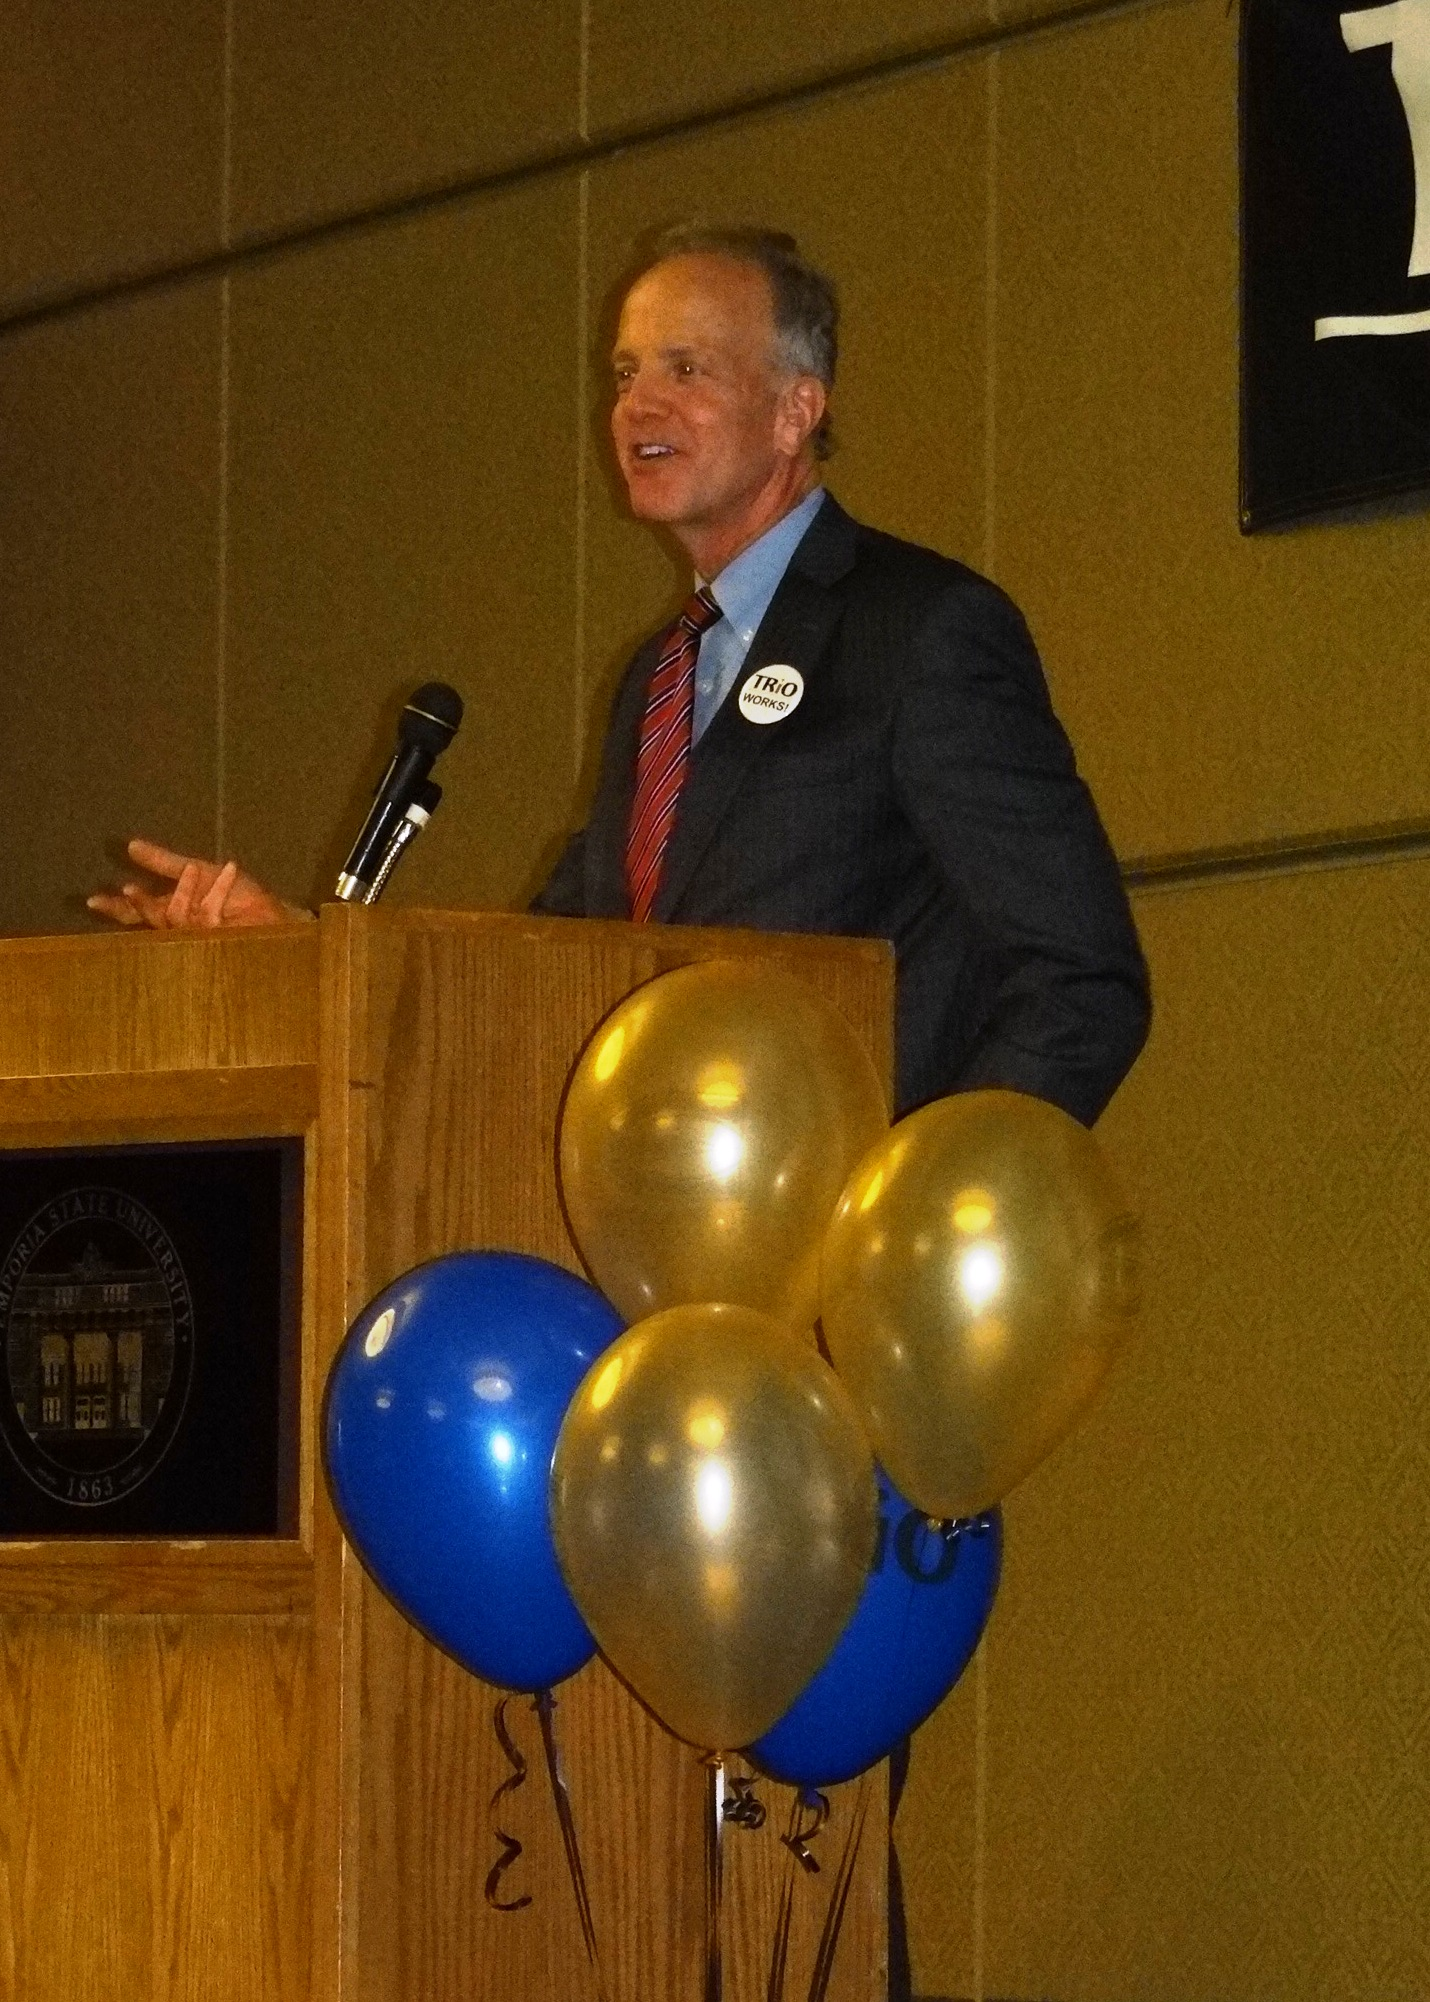 Sen. Moran Speaks at Emporia State University's TRIO Reception